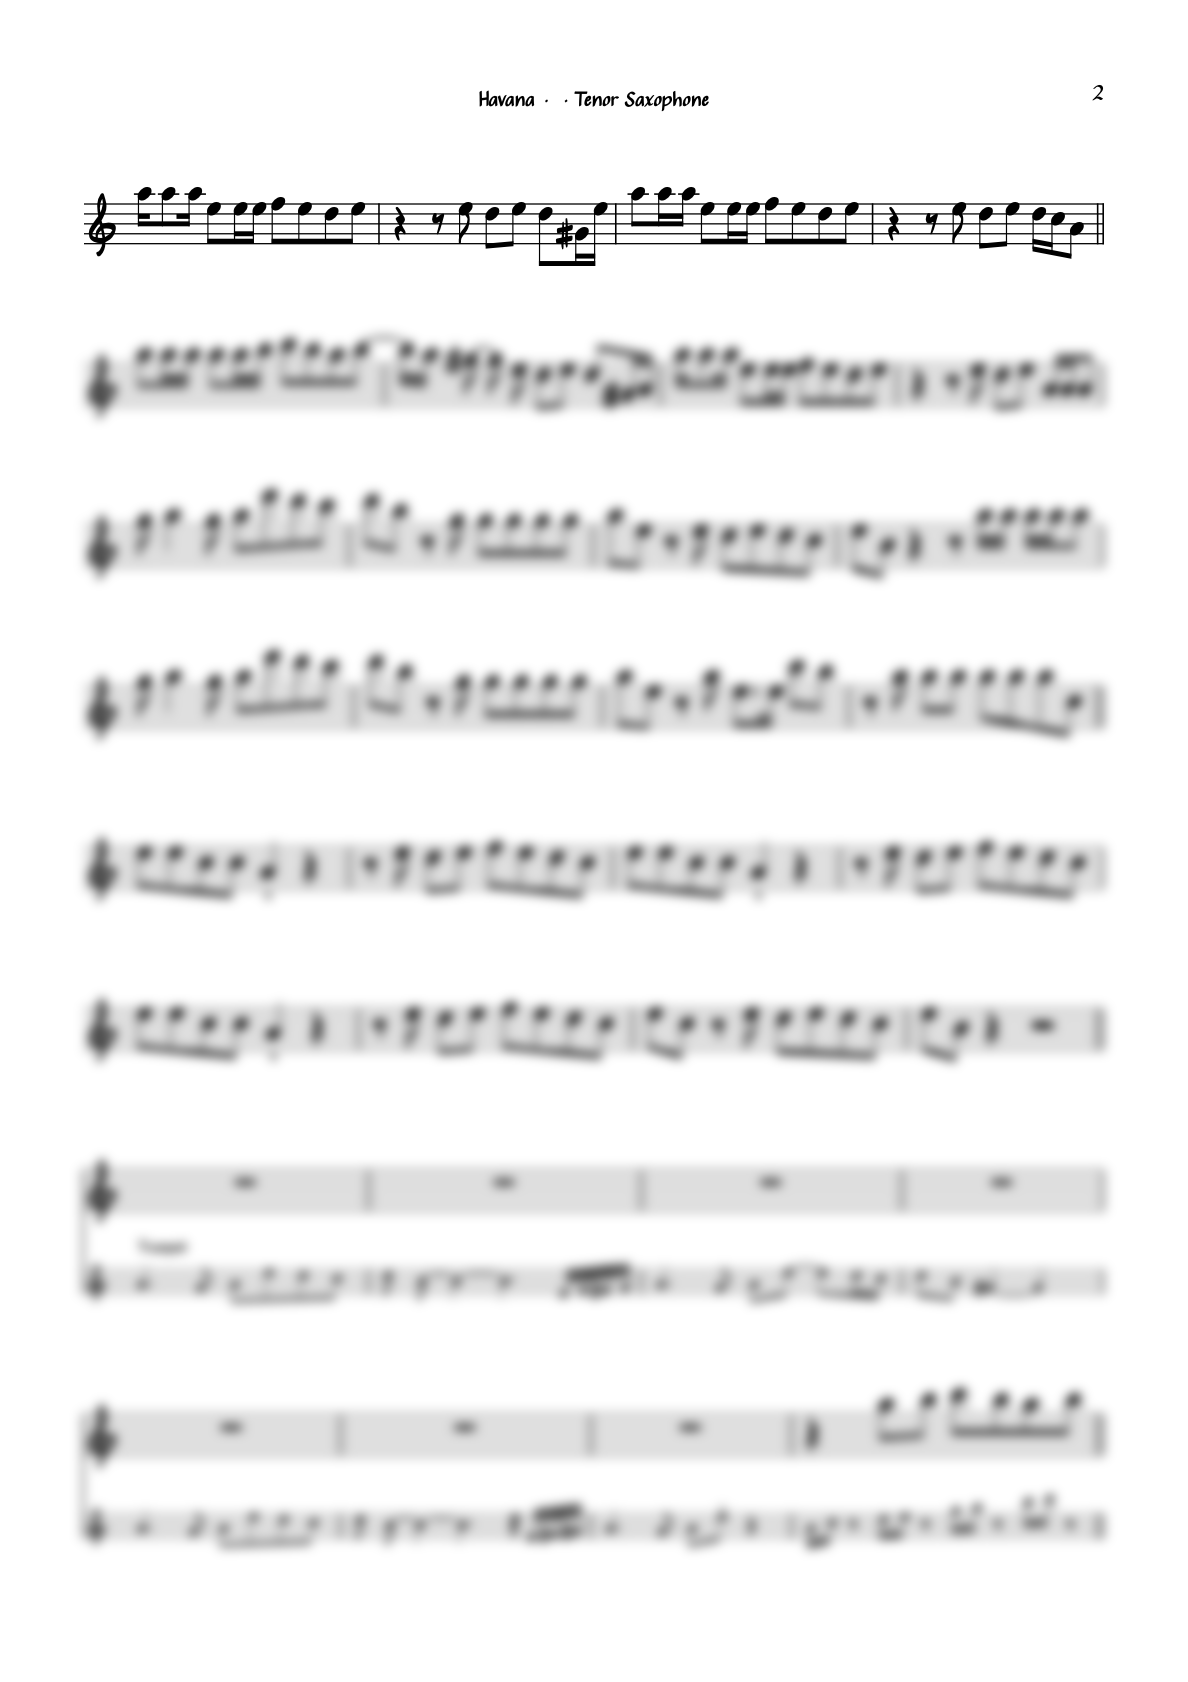 """Havana"" by Camila Cabello for Tenor Saxophone including Play-Along"